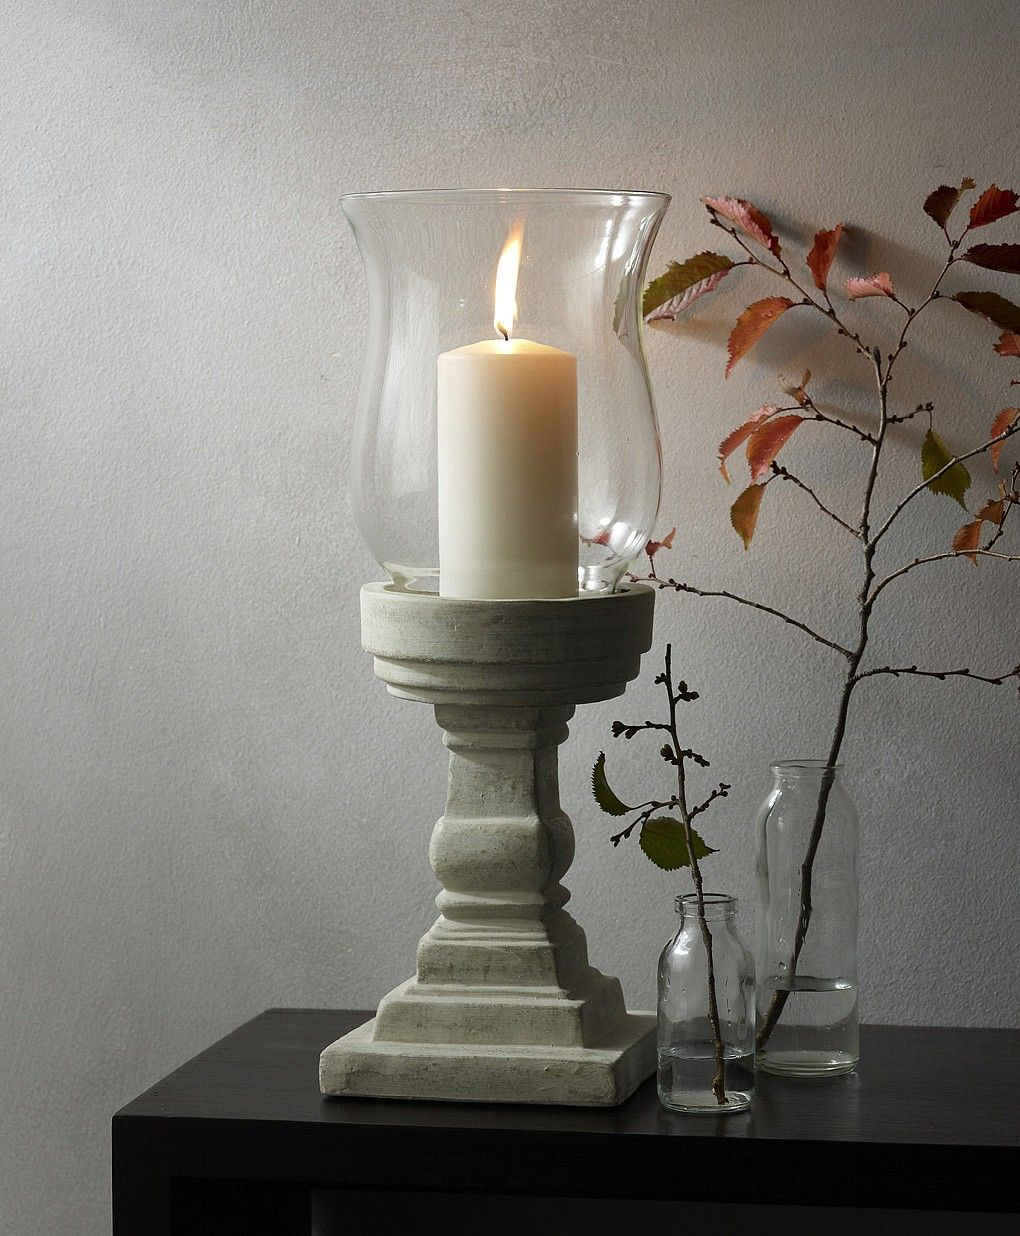 Tall Glass Windlight Candles, Candle holders, Scented